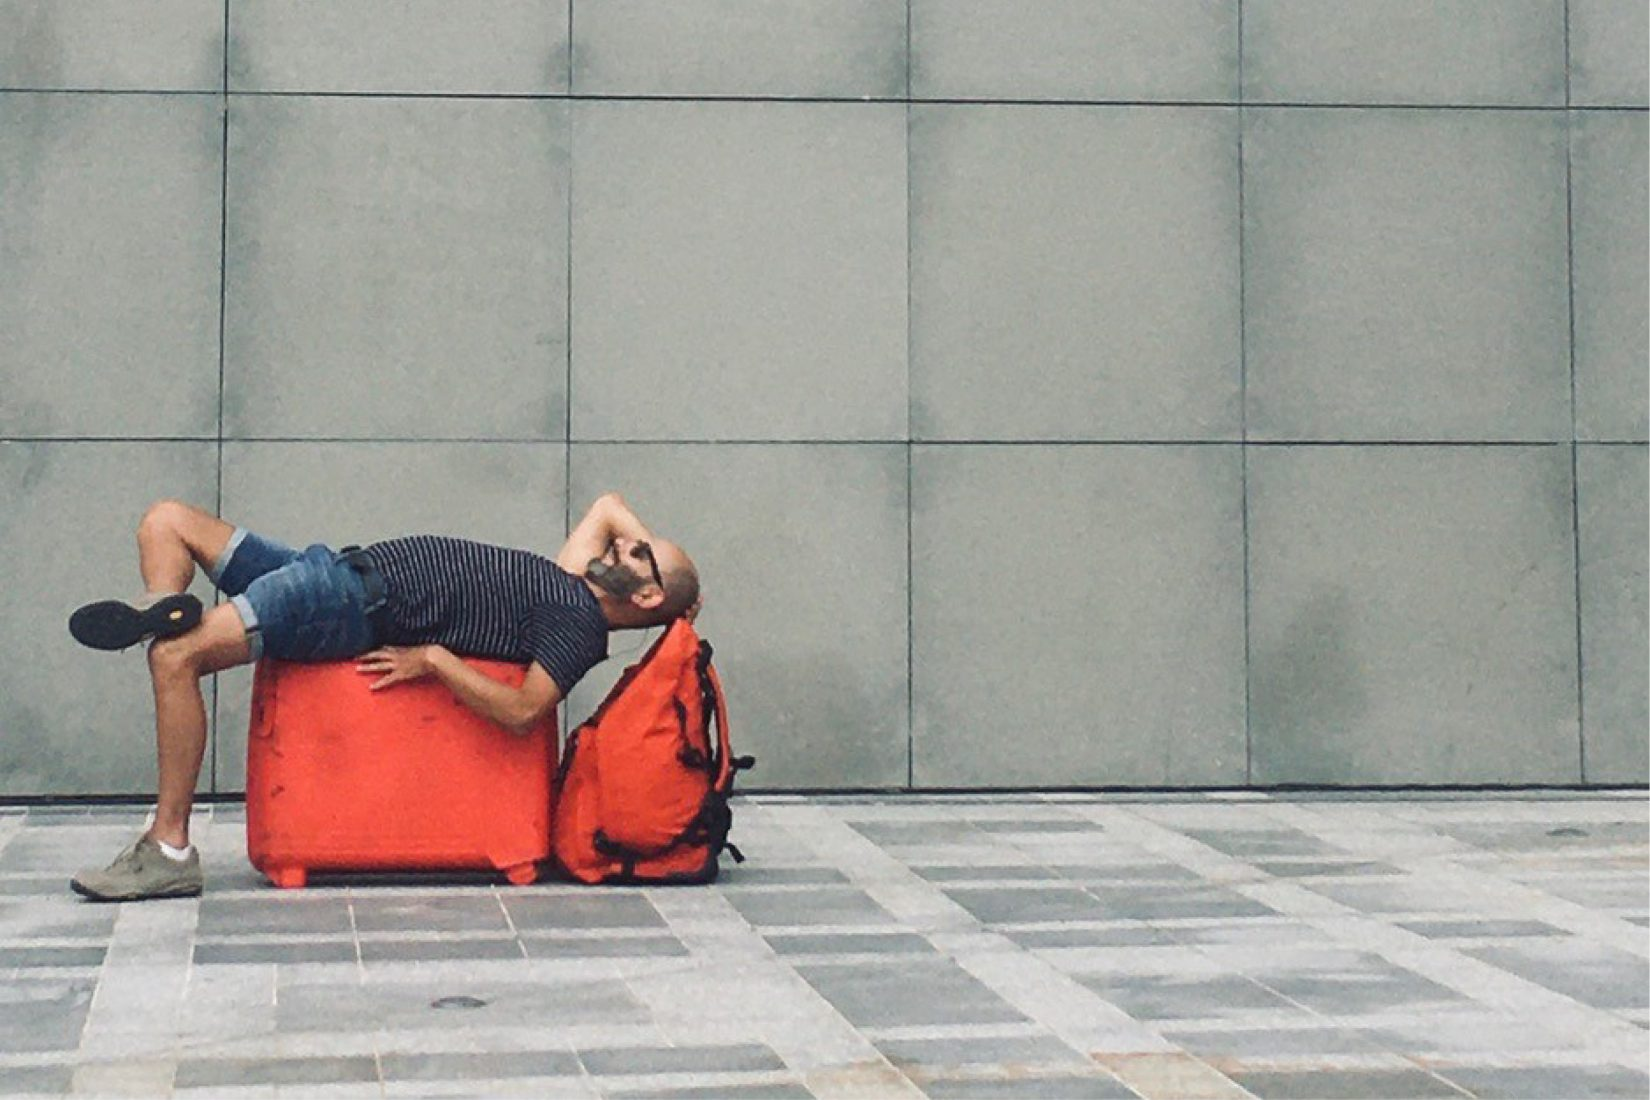 A man lying on a red travel bag